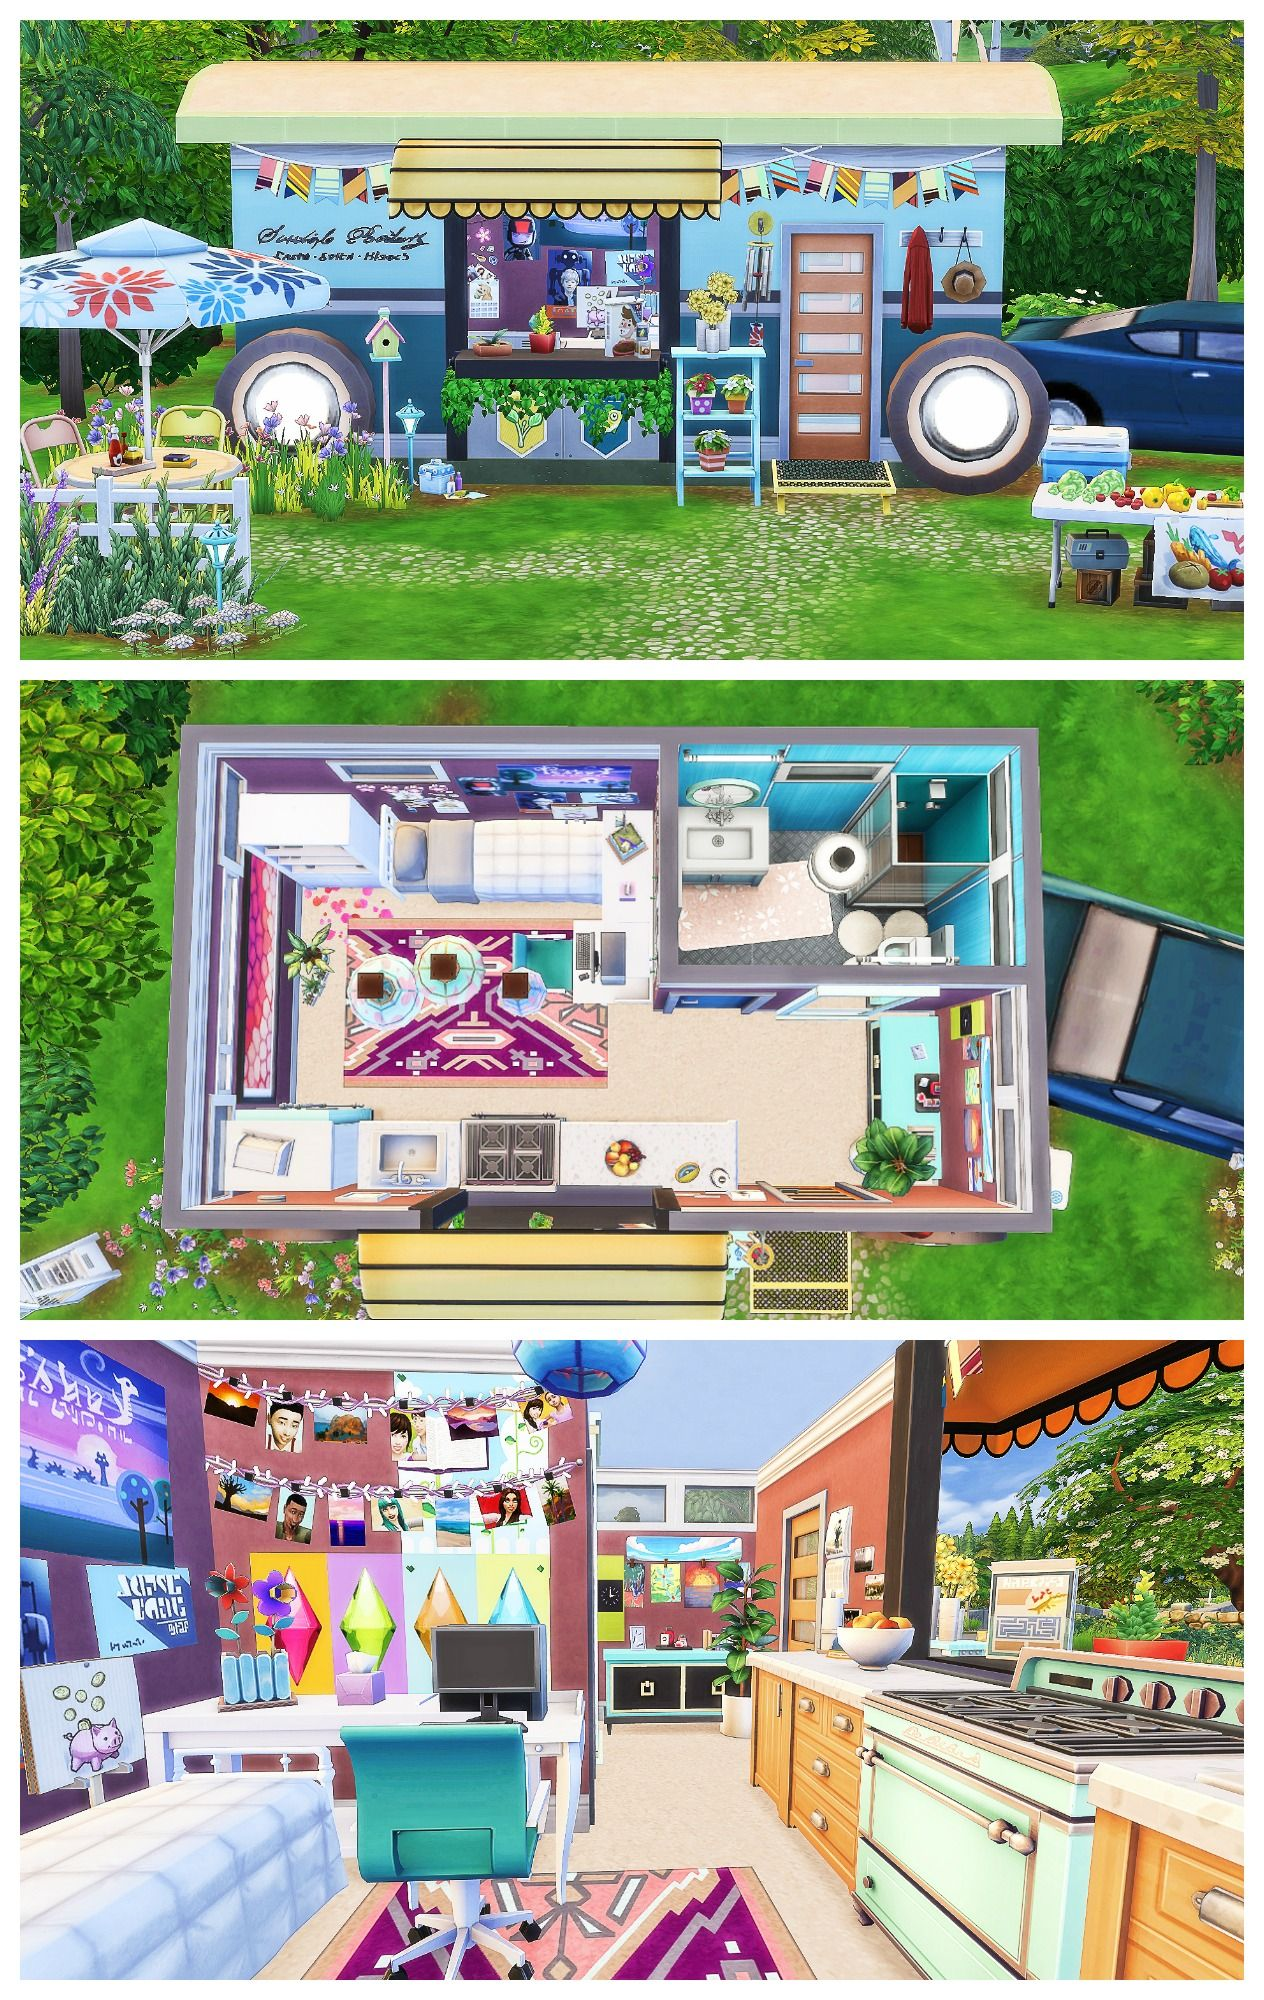 Caravan tiny home sims speed build also best decorating the house ideas images on pinterest rh